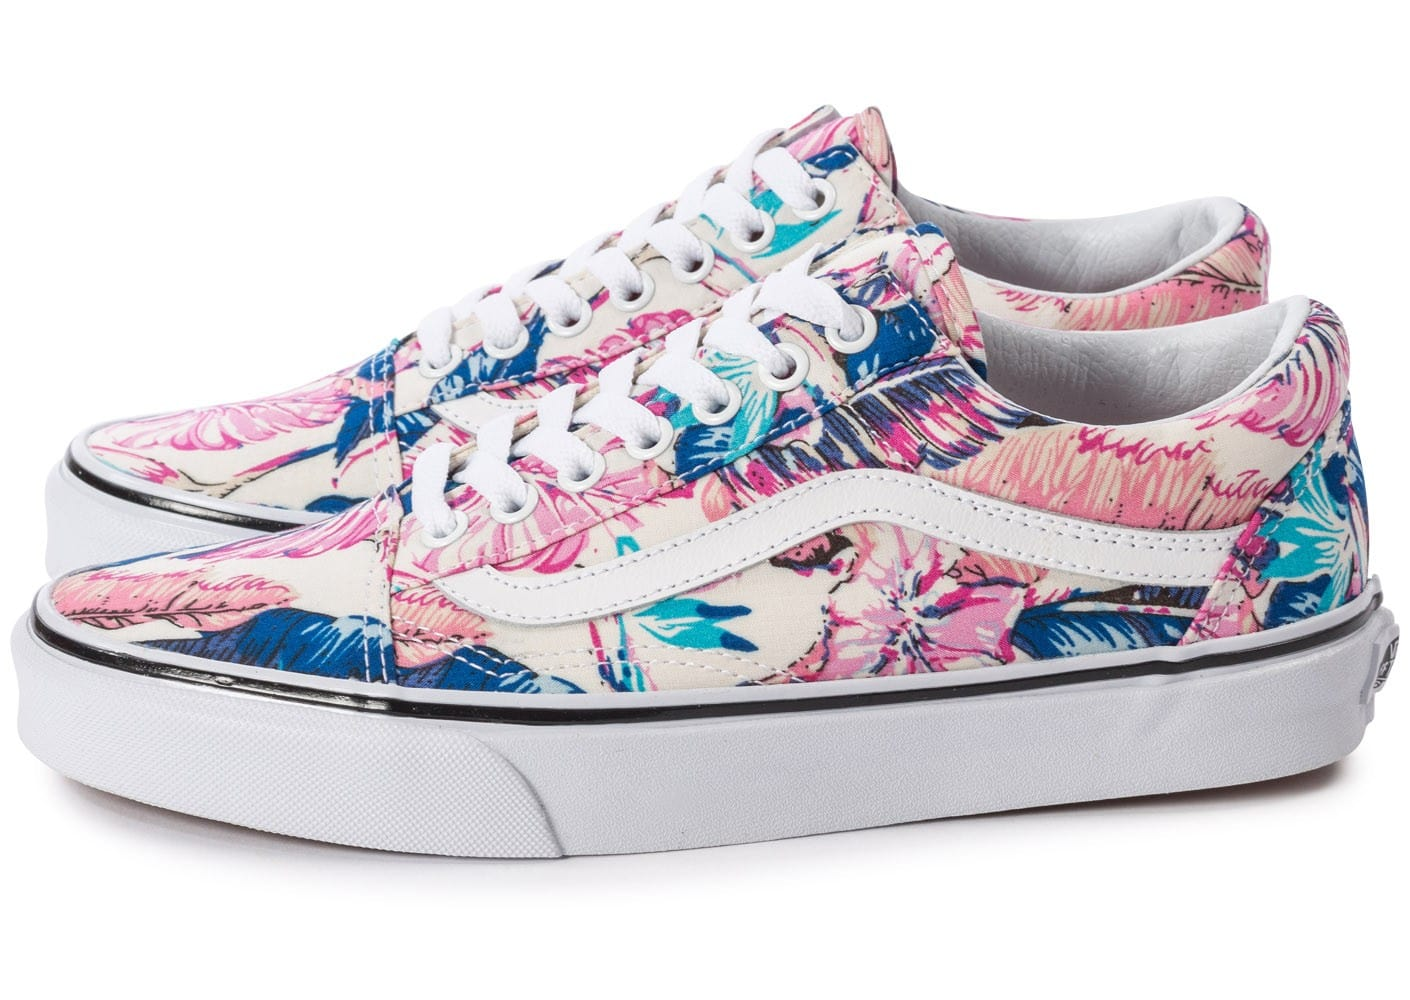 Vans Old Skool Tropical - Chaussures Baskets femme - Chausport